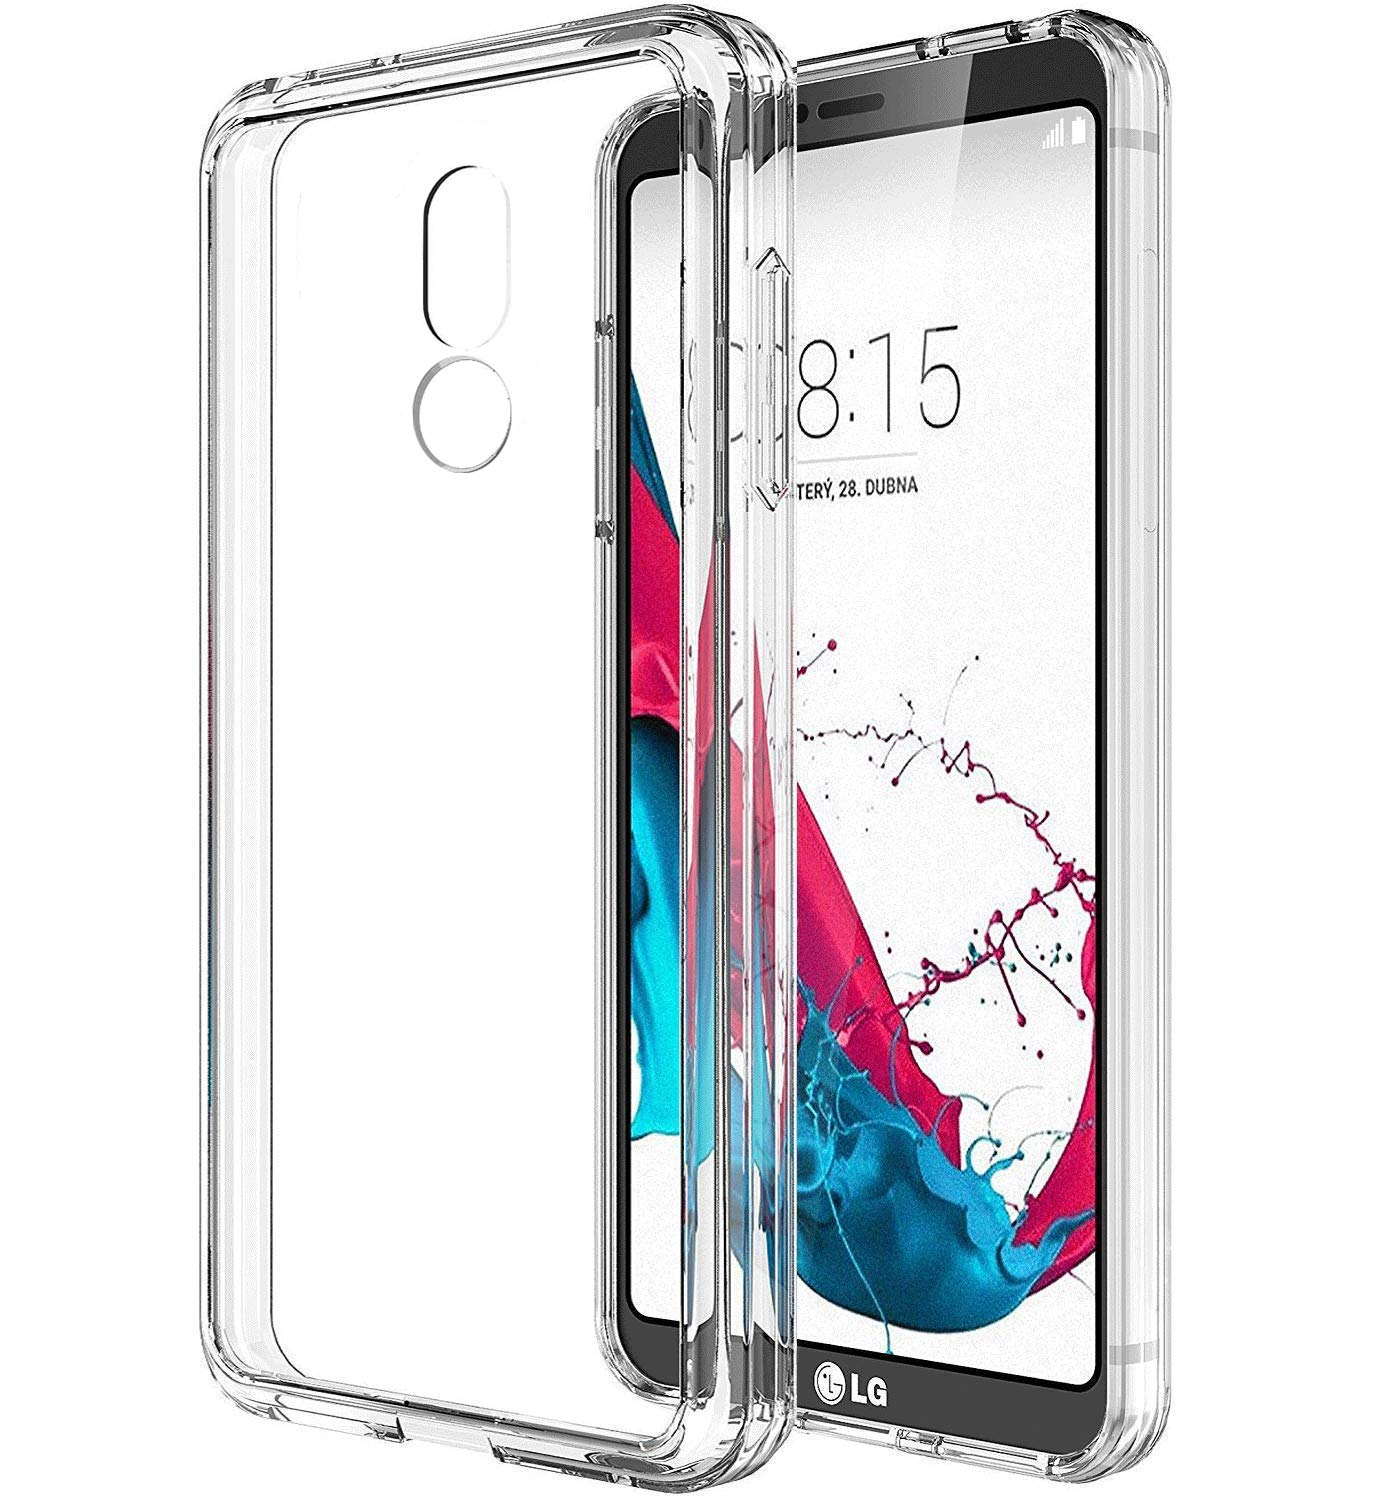 HF-LGPC-C: Clear TPU Protective Case FOR LG Smart Phones